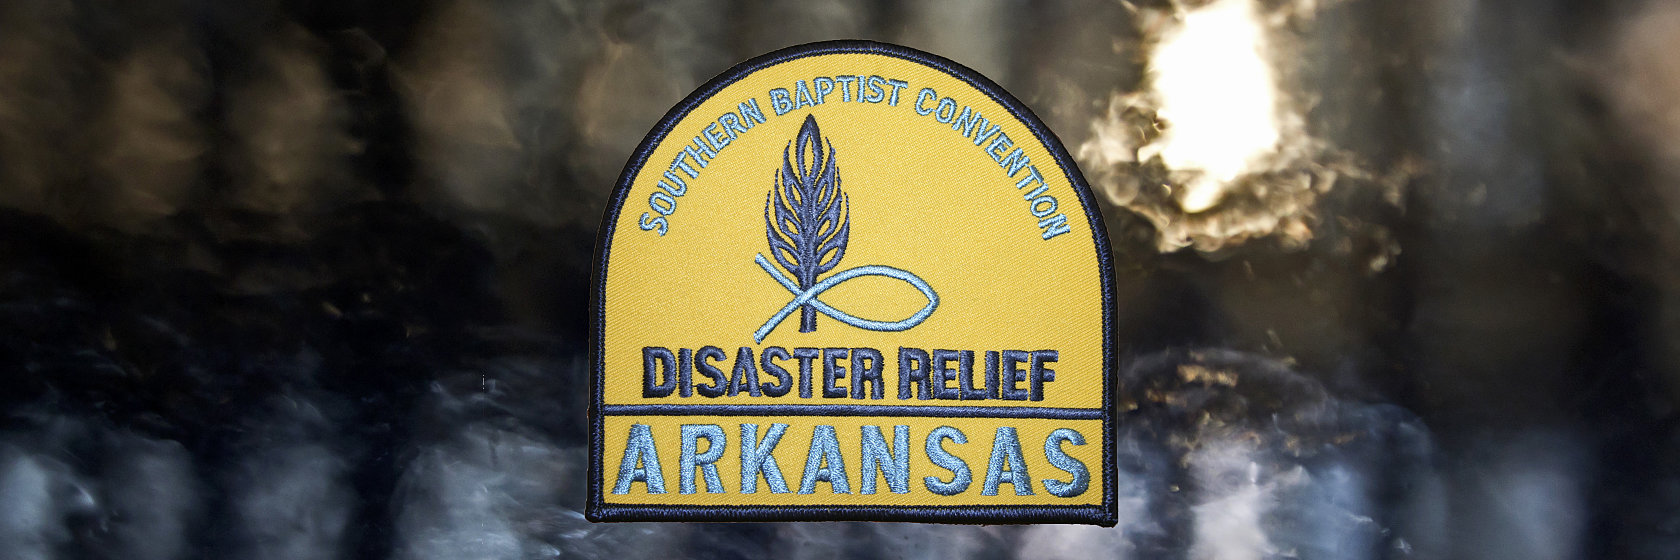 Visit absc.org/disasterrelief to learn more about training to serve in Arkansas Disaster Relief.